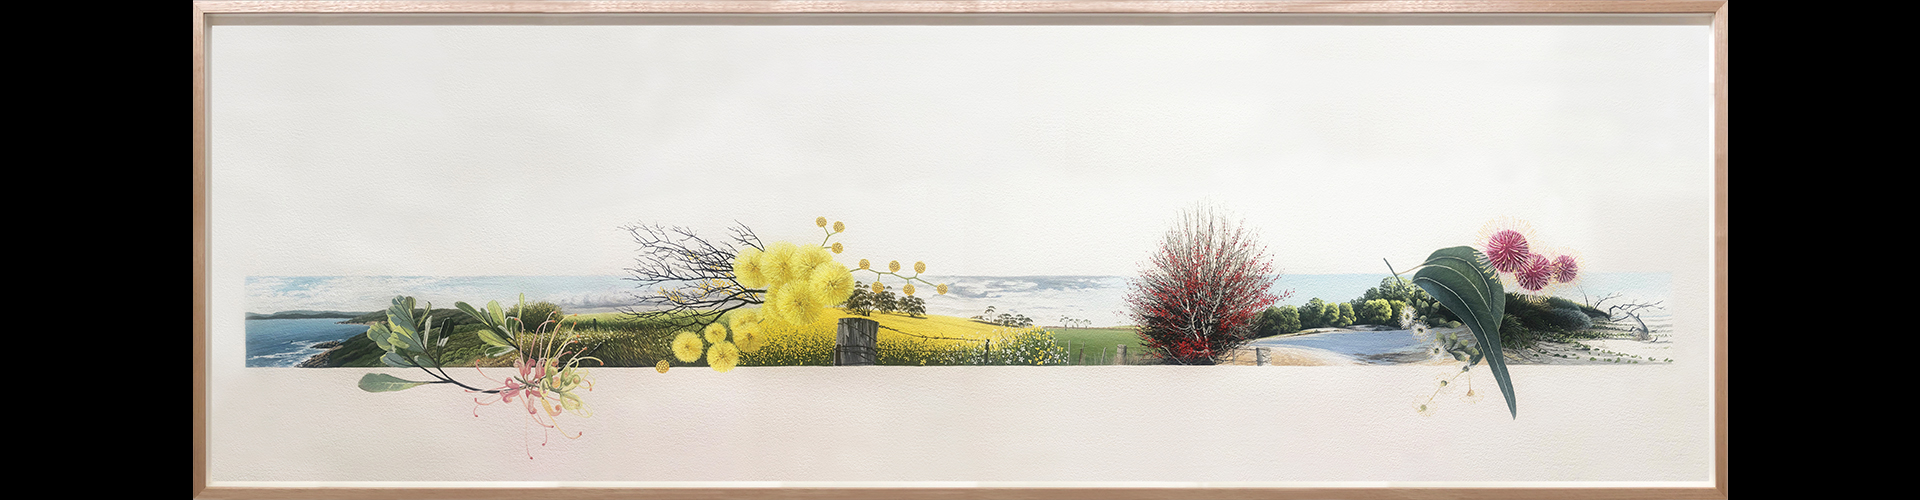 framed painting of wattle